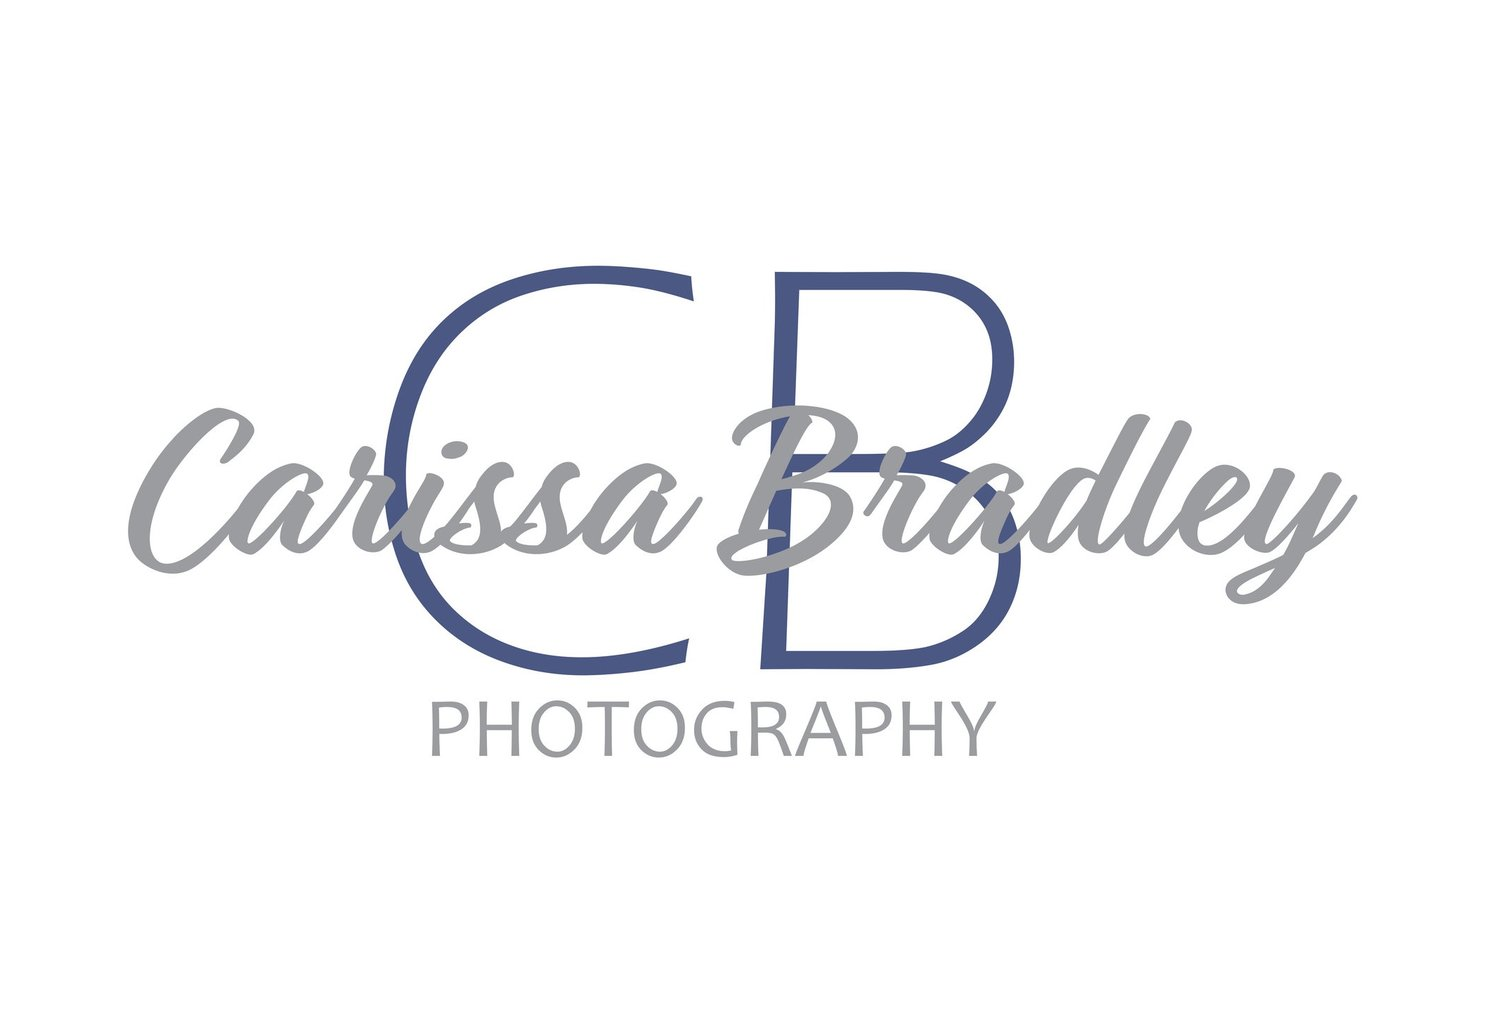 CARISSA BRADLEY PHOTOGRAPHY